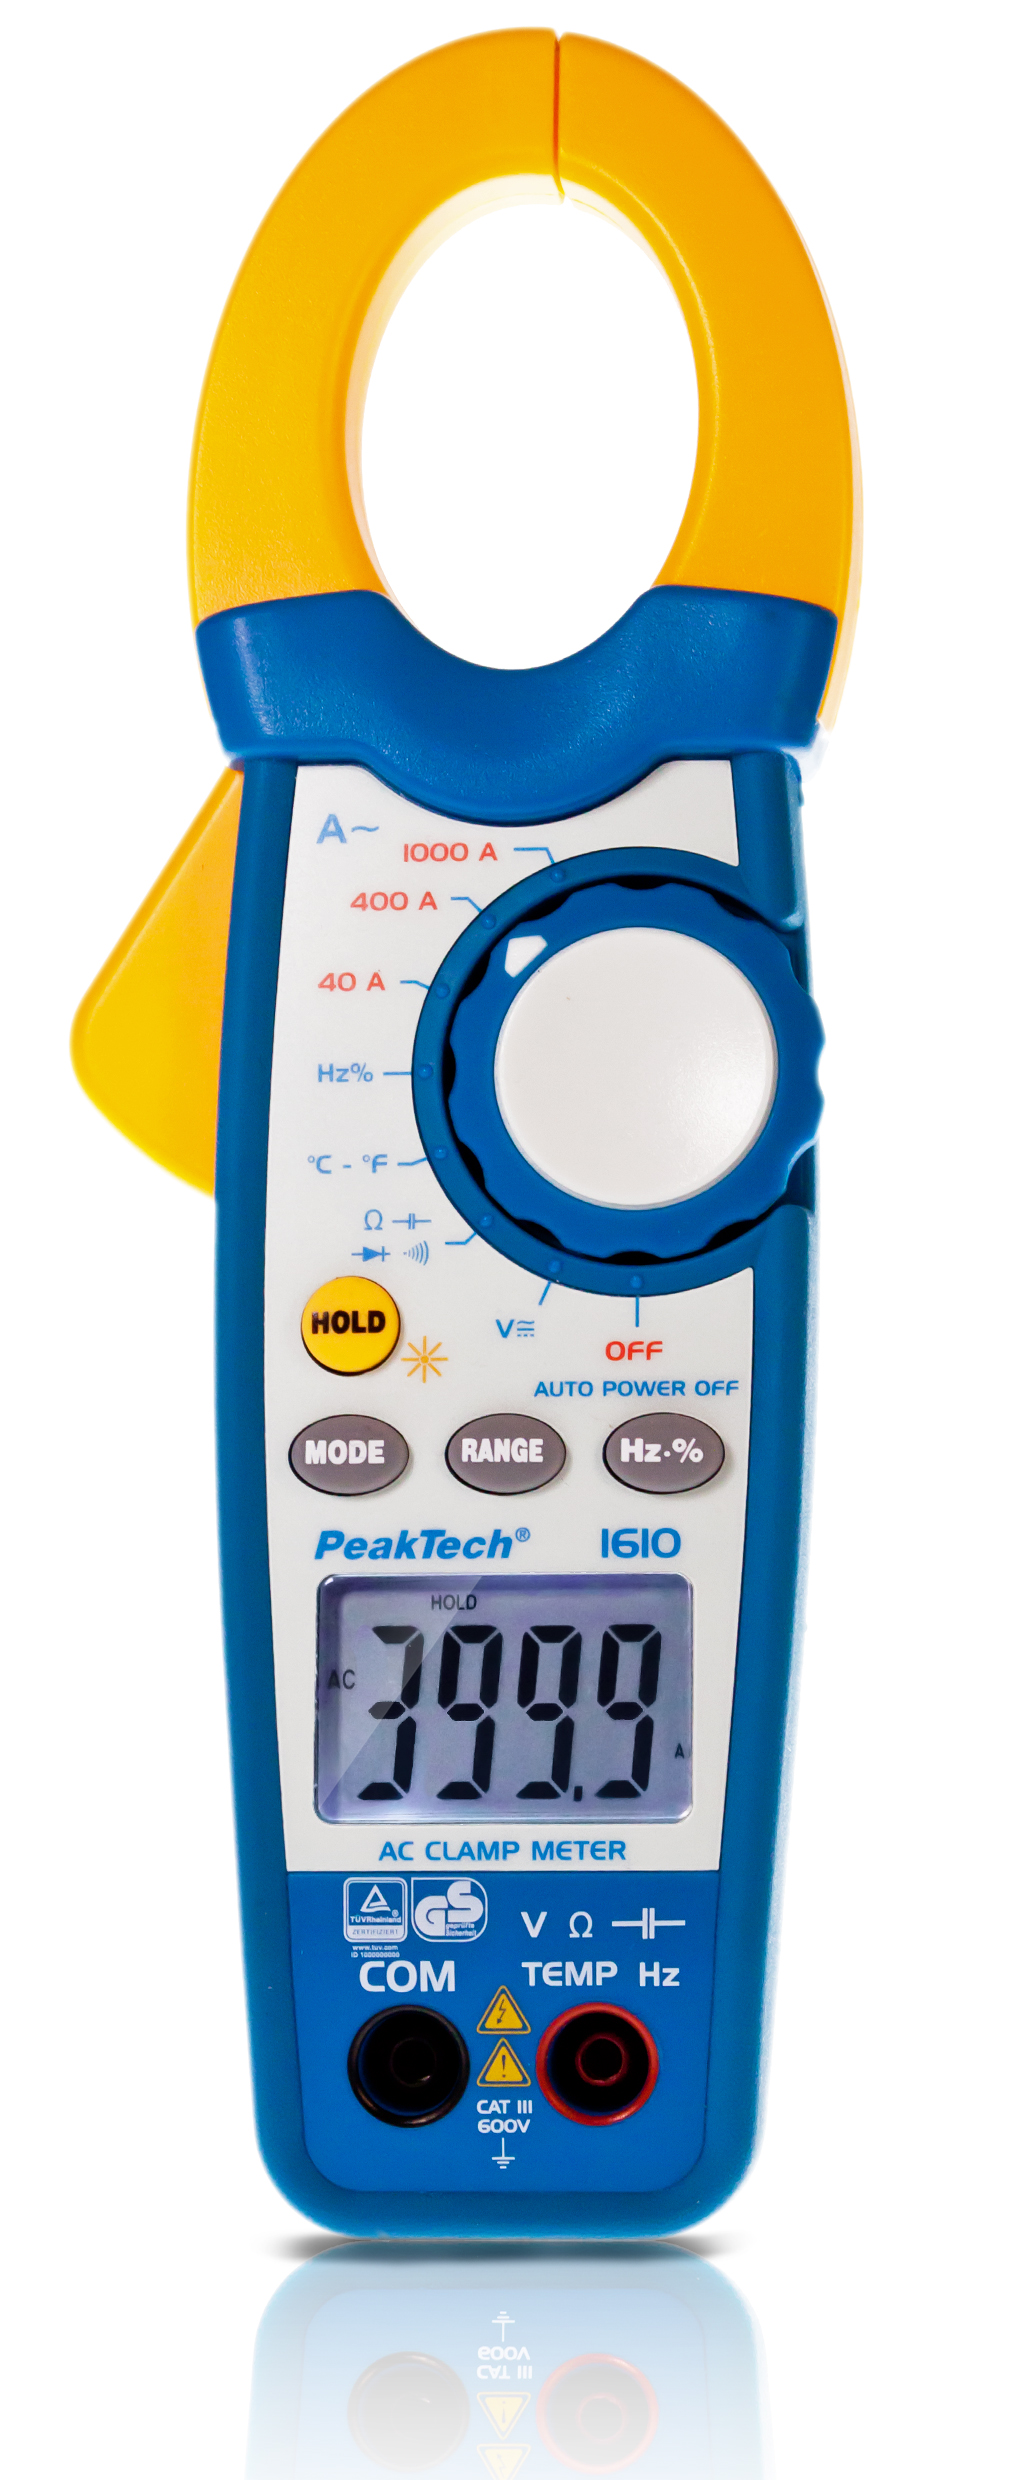 «PeakTech® P 1610» Clamp meter 4,000 counts 1000 A AC